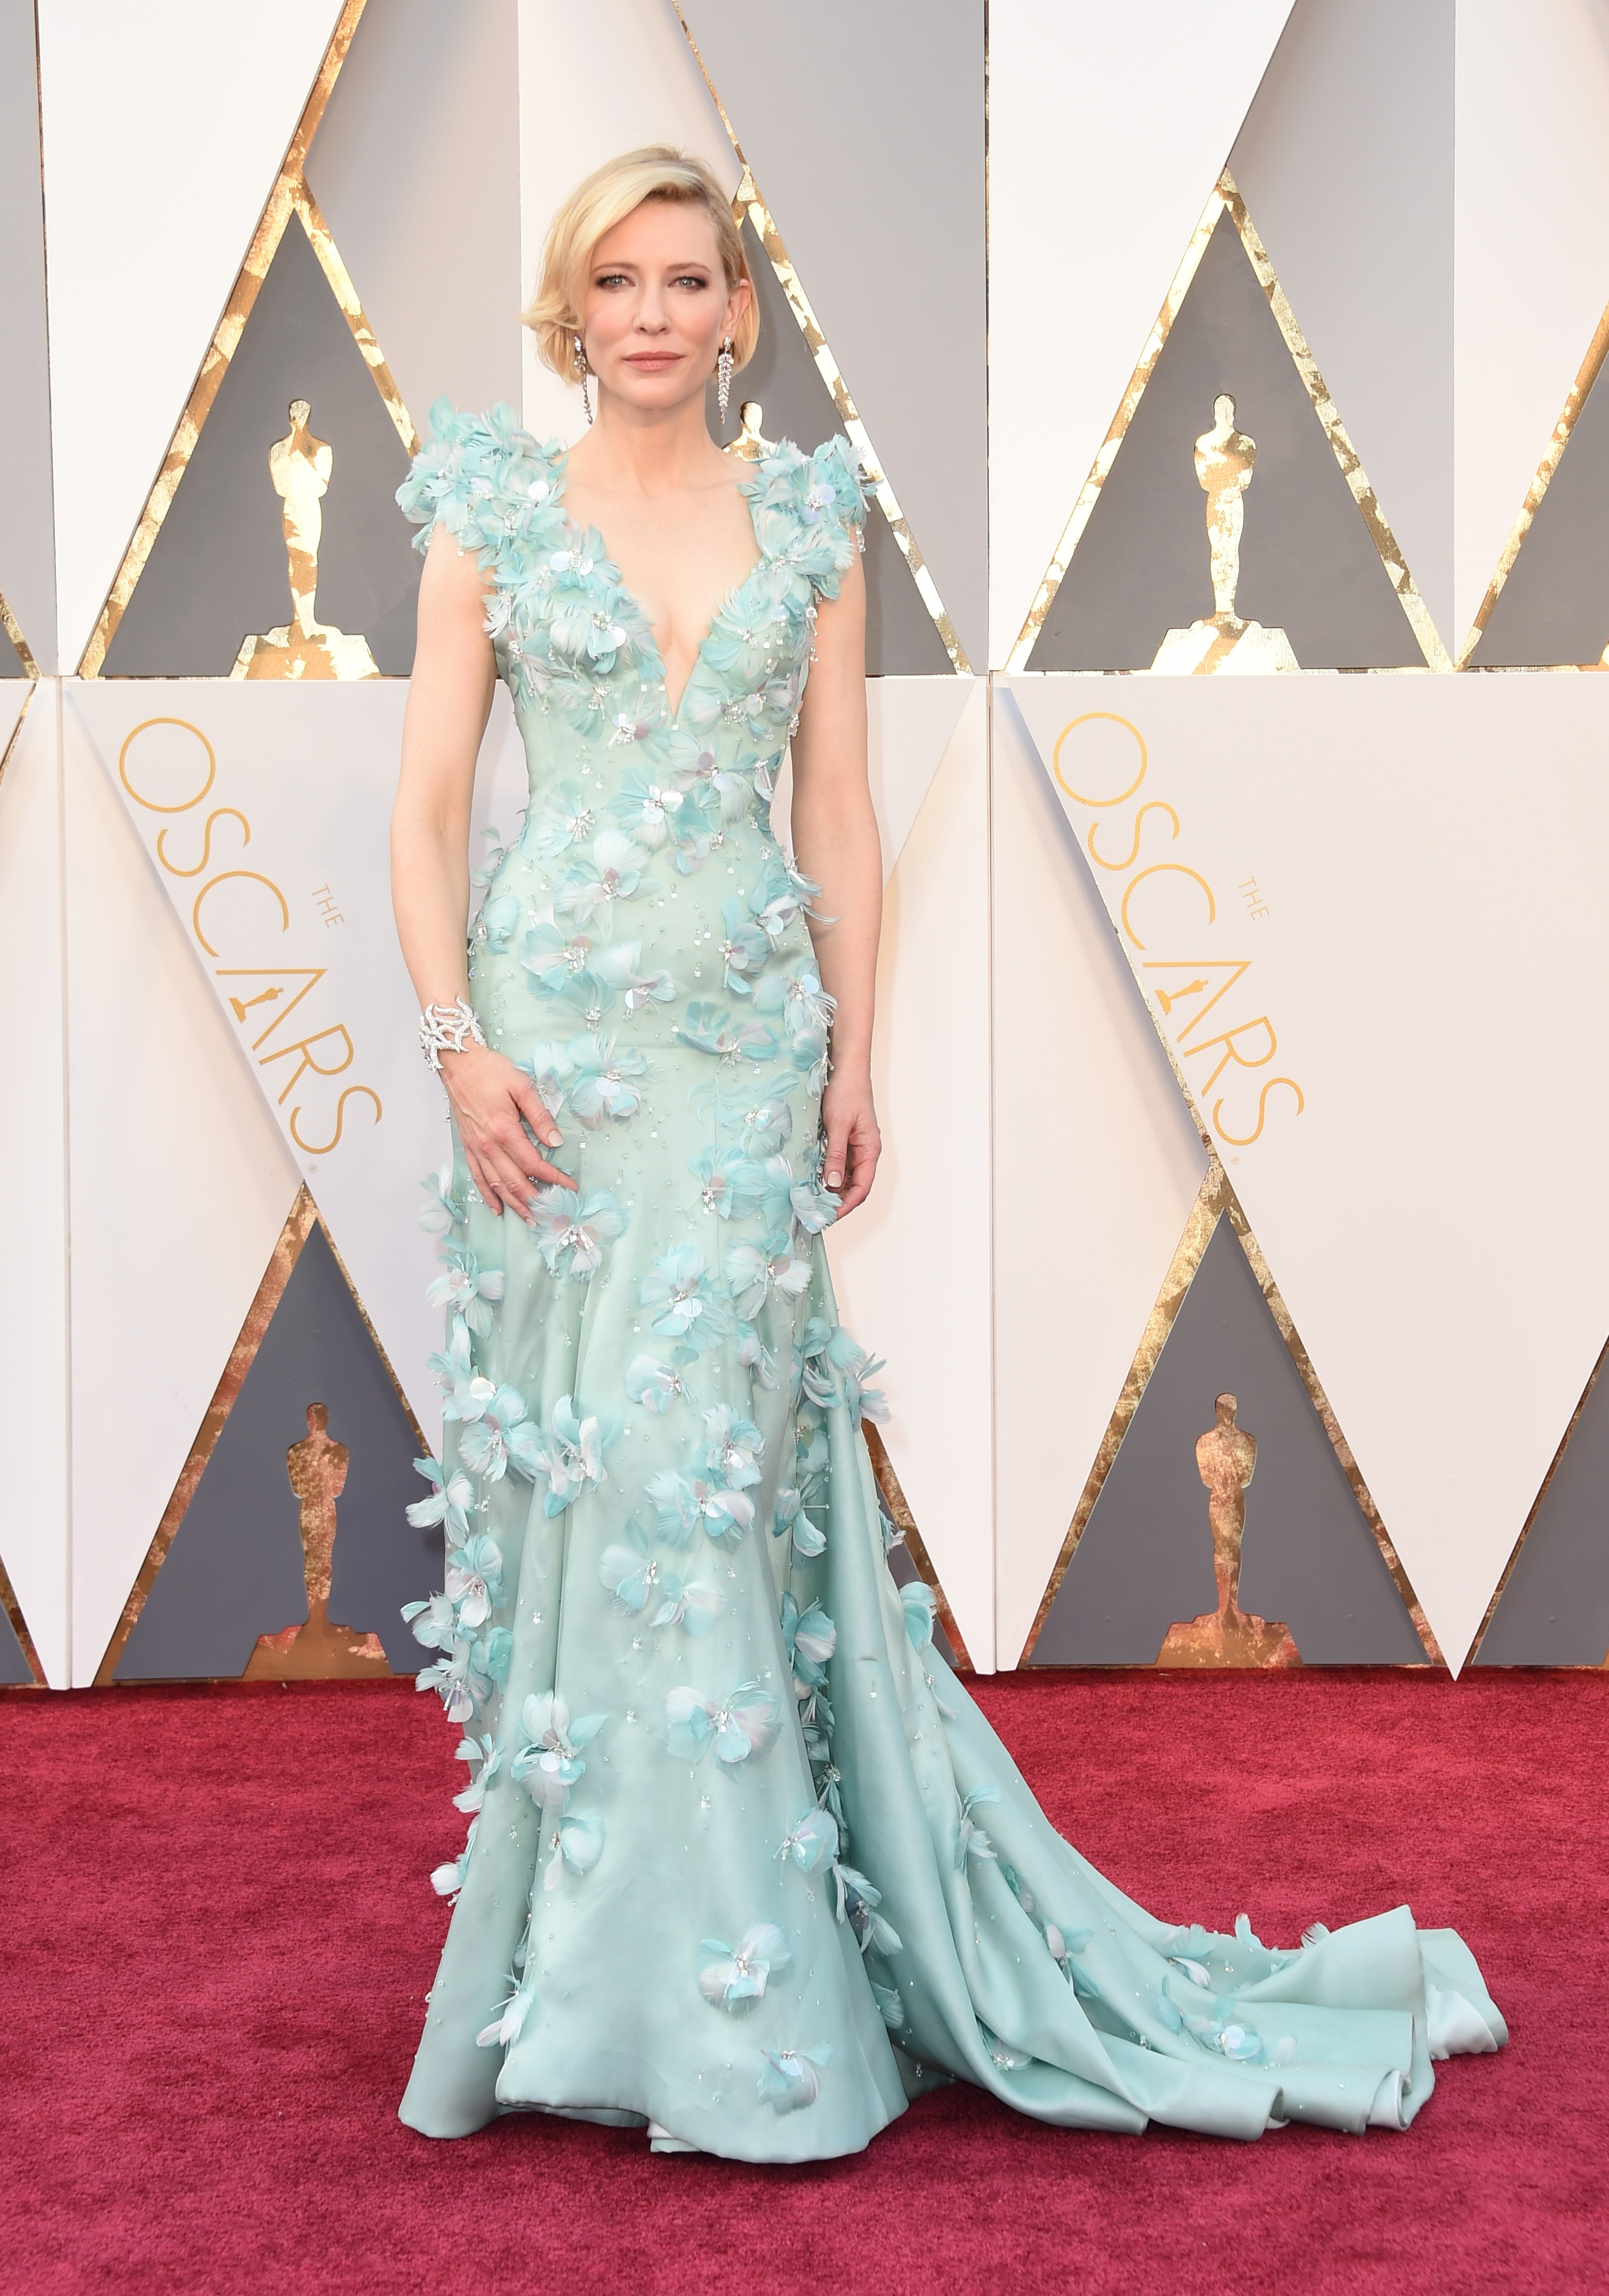 Cate Blanchett attends the 88th Annual Academy Awards on Feb. 28, 2016 in Hollywood, Calif.